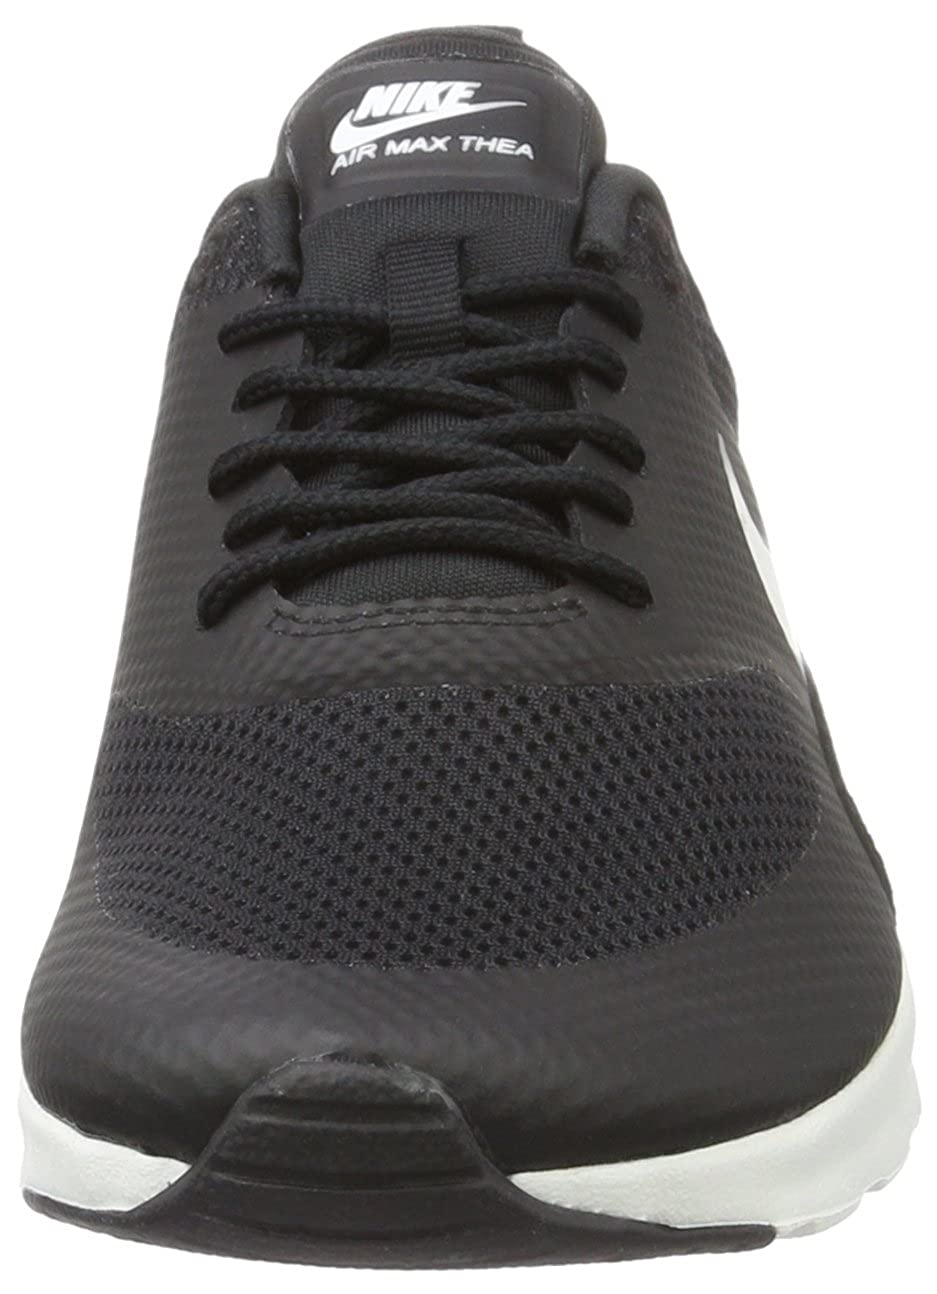 hot sale online 784b9 a46a4 Amazon.com   Nike Women s Air Max Thea Low-Top Sneakers, Black   Running